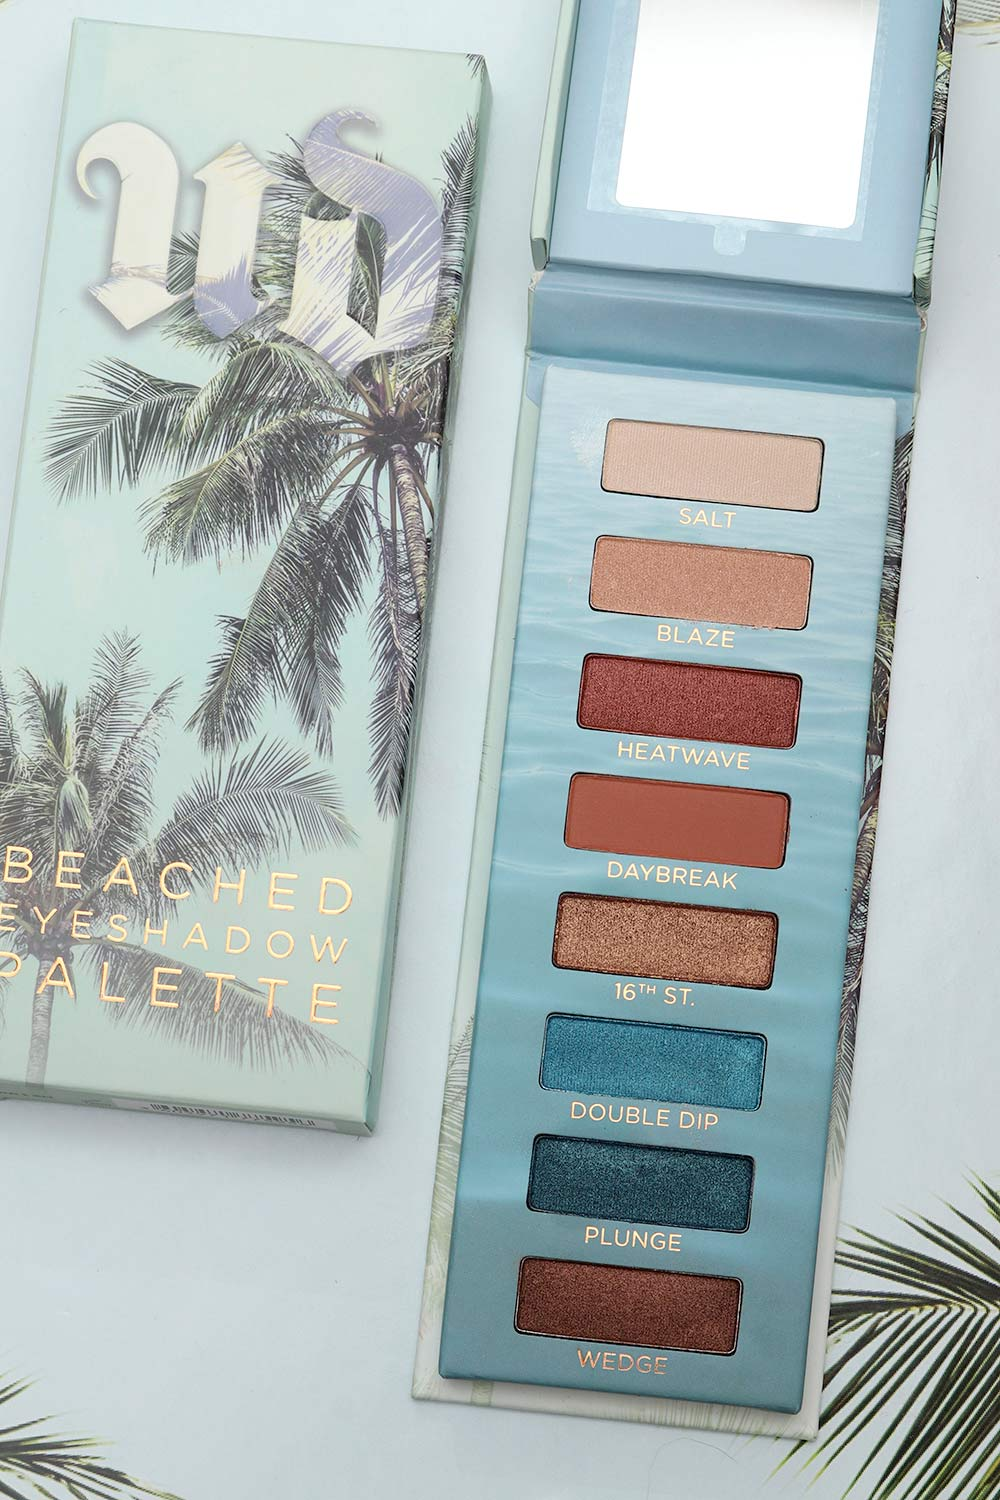 urban decay beached palette